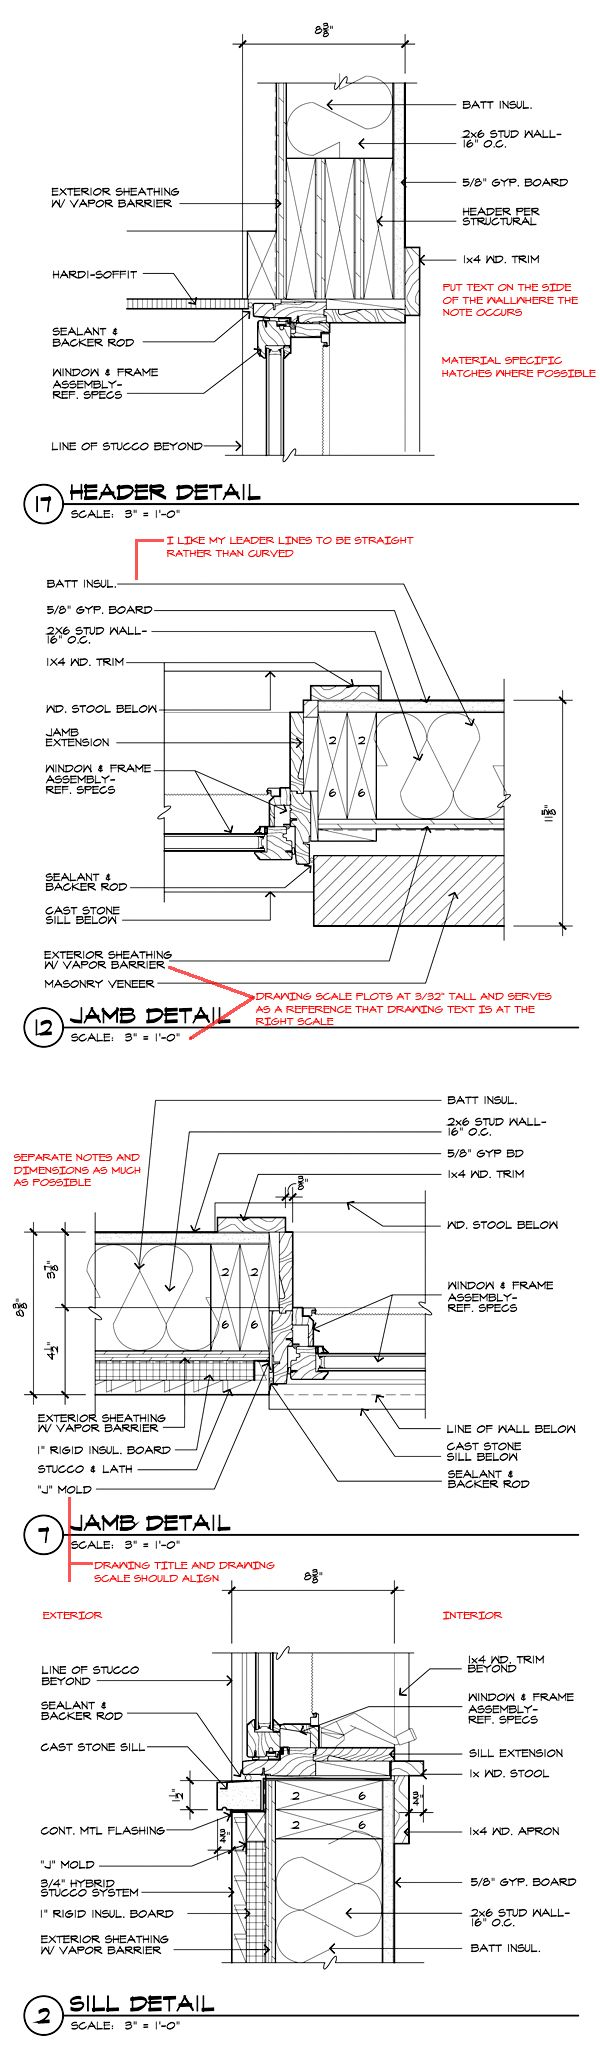 Architectural Drawing Window window details - architectural graphics standards | arch / graphic